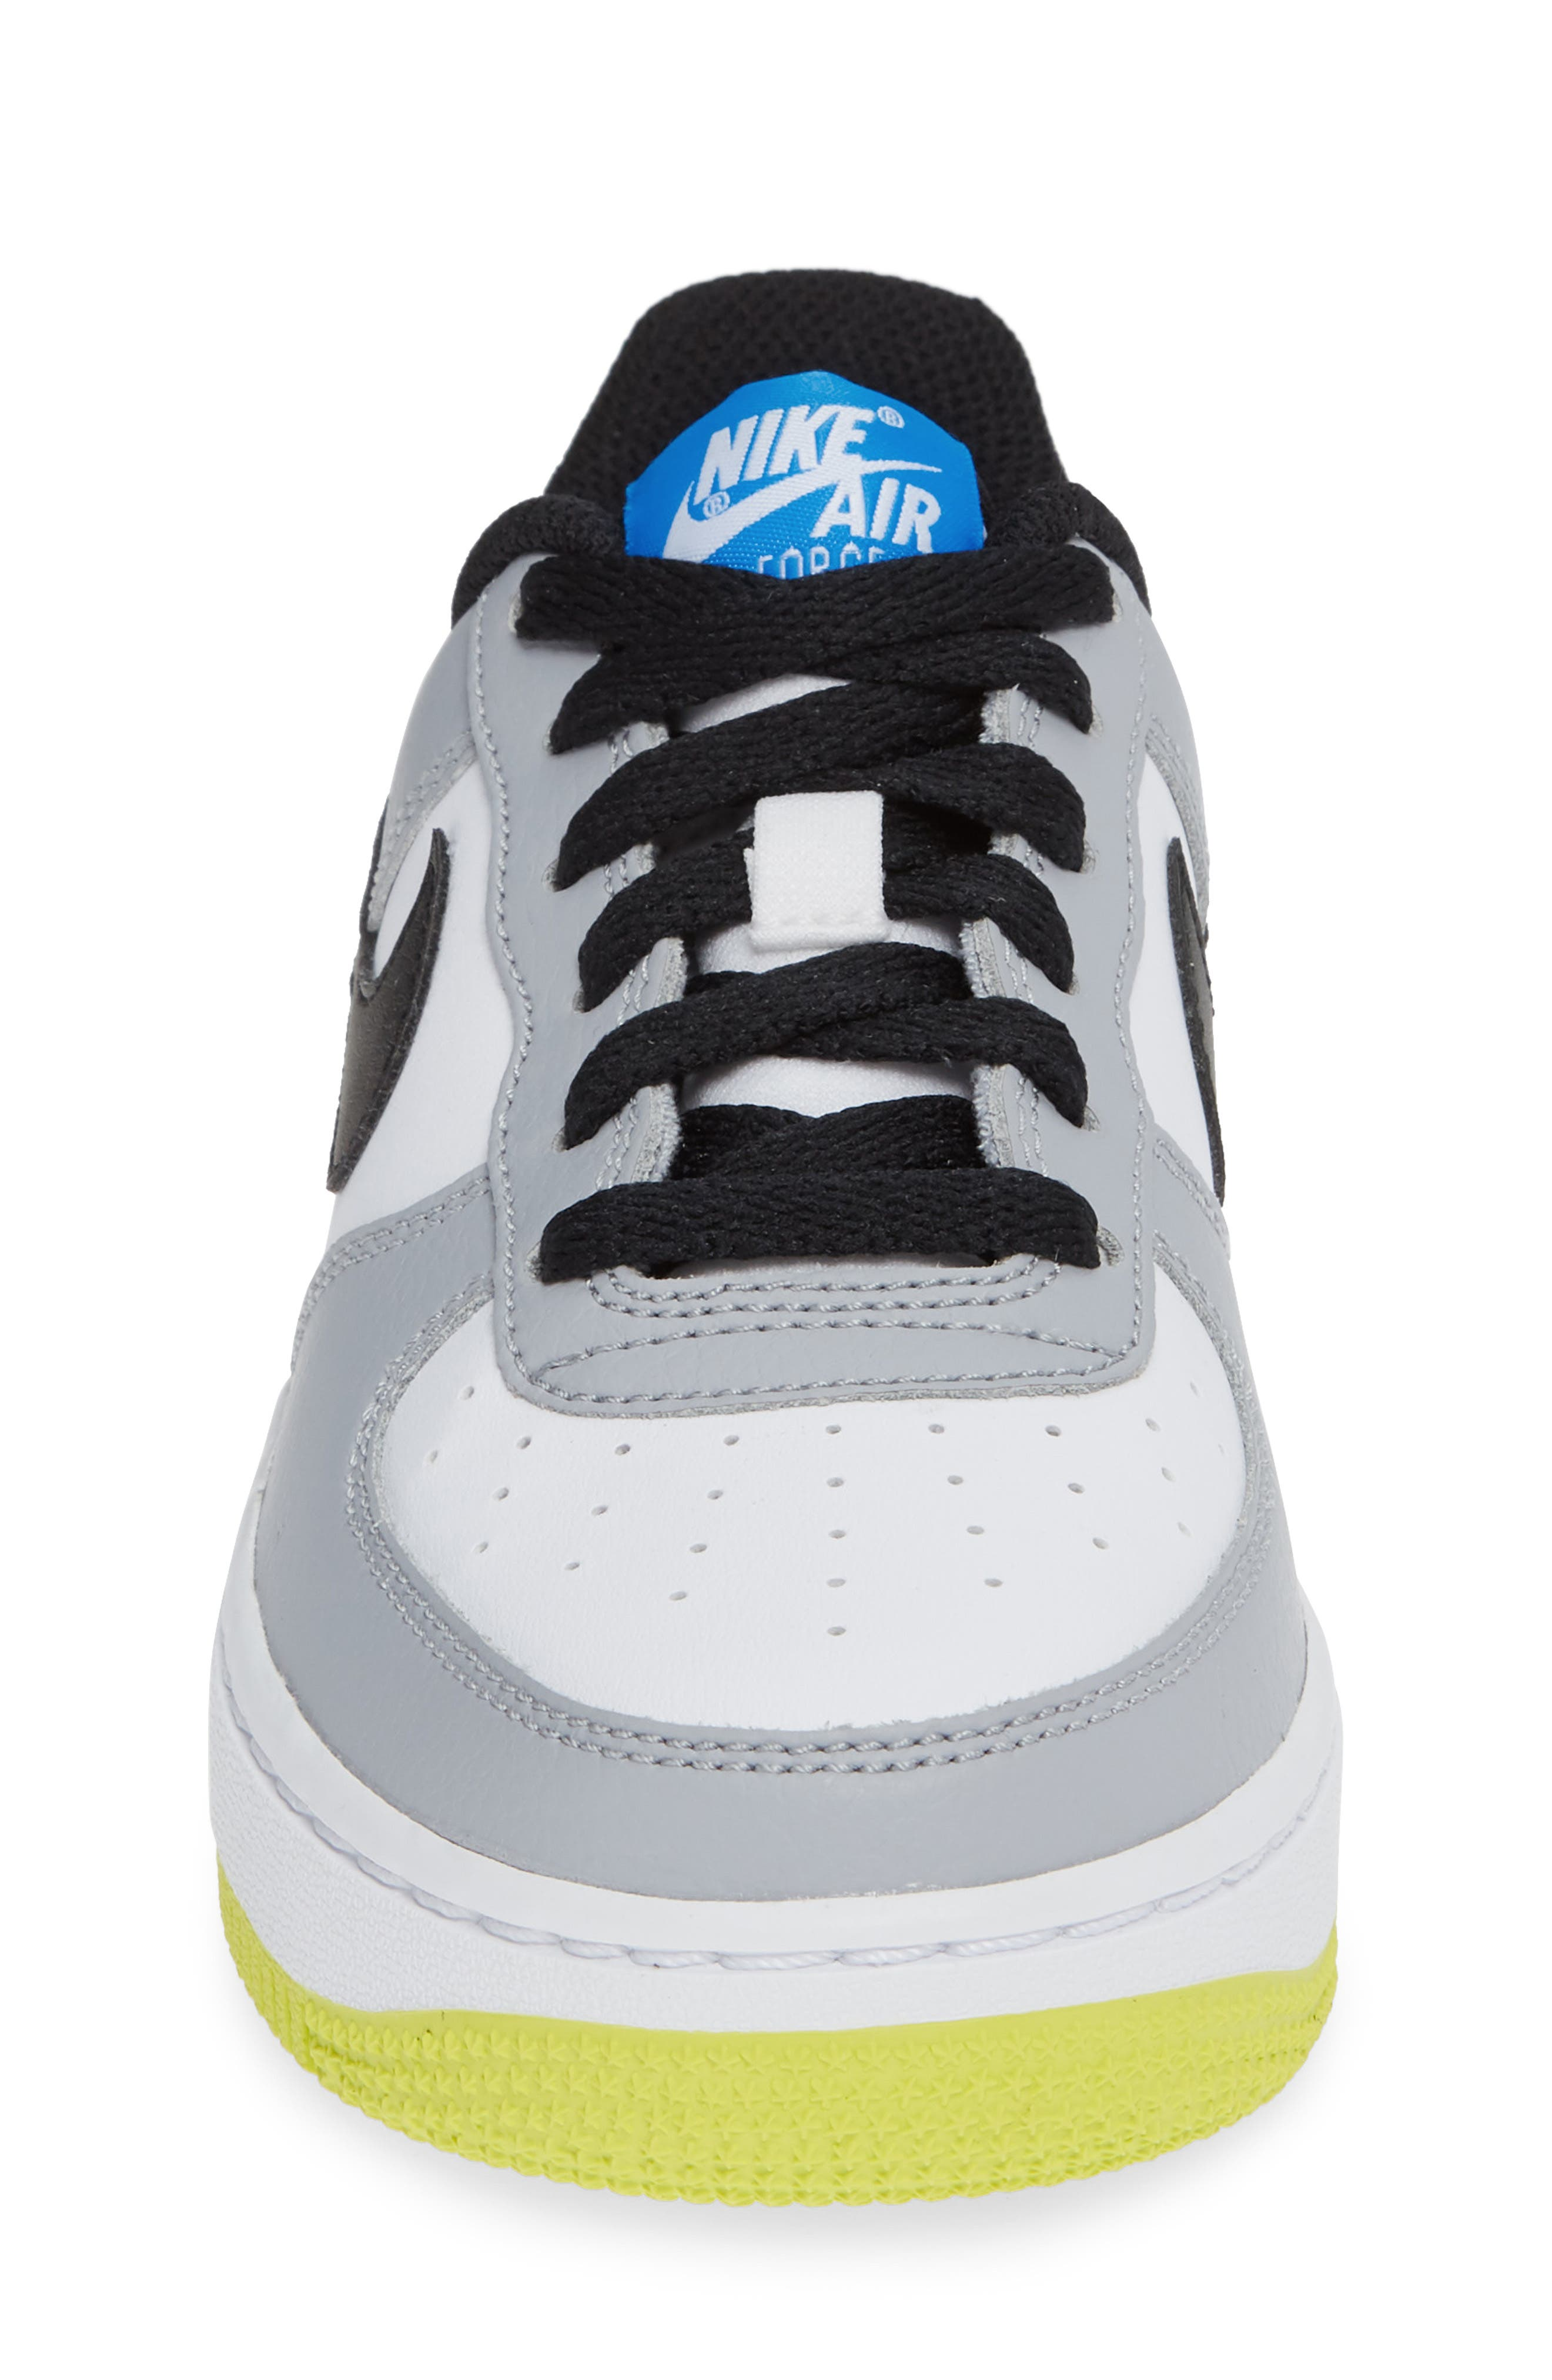 Air Force 1 Sneaker,                             Alternate thumbnail 5, color,                             Wolf Grey/ Black/ White/ Blue